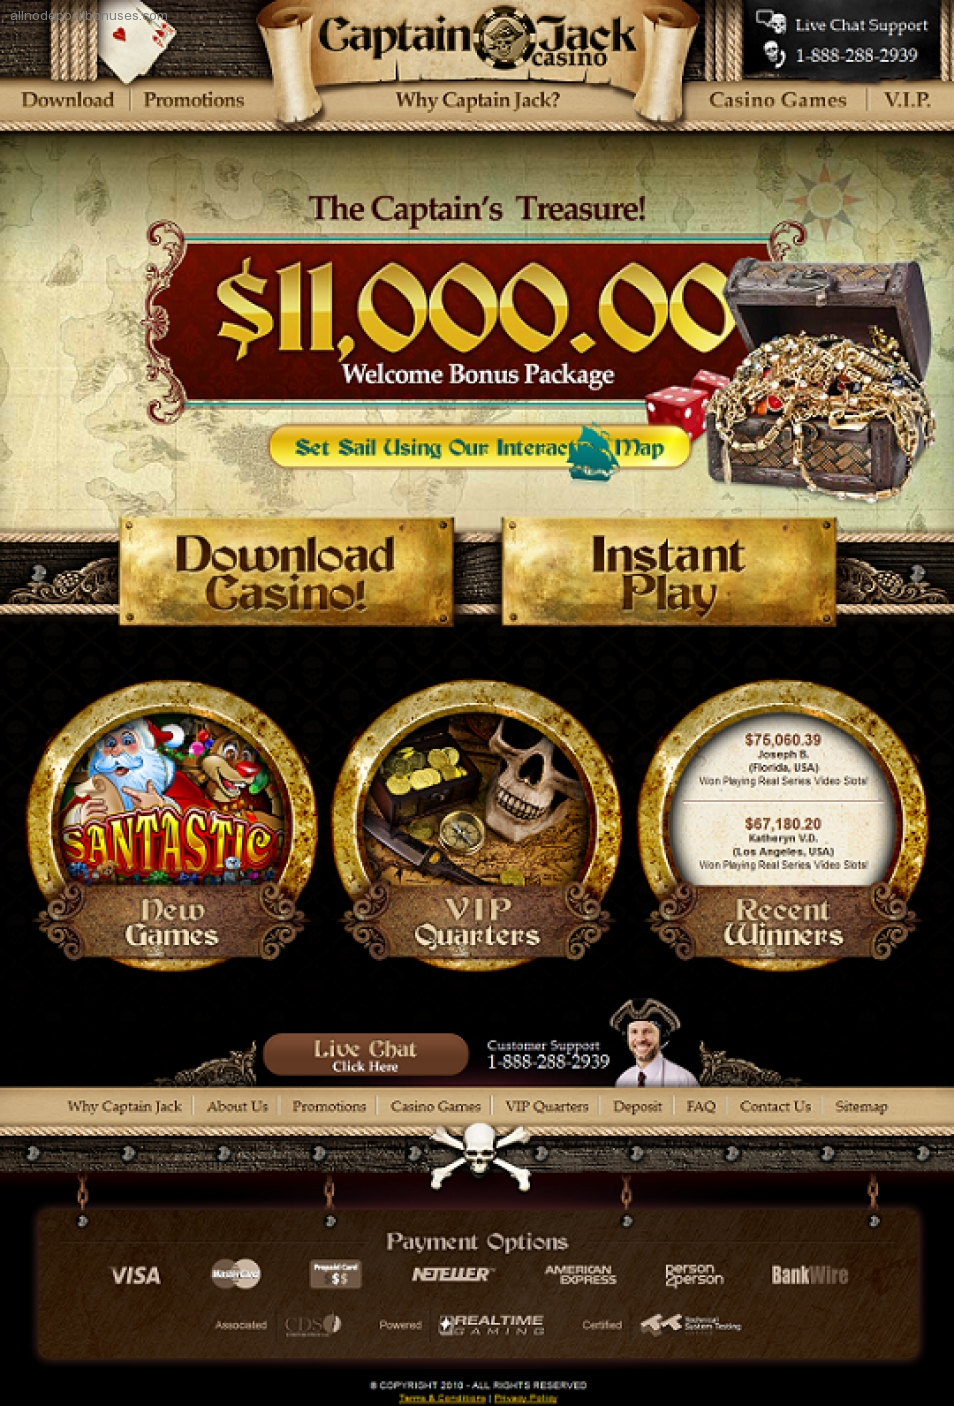 Captain Jack Casino no deposit bonus codes